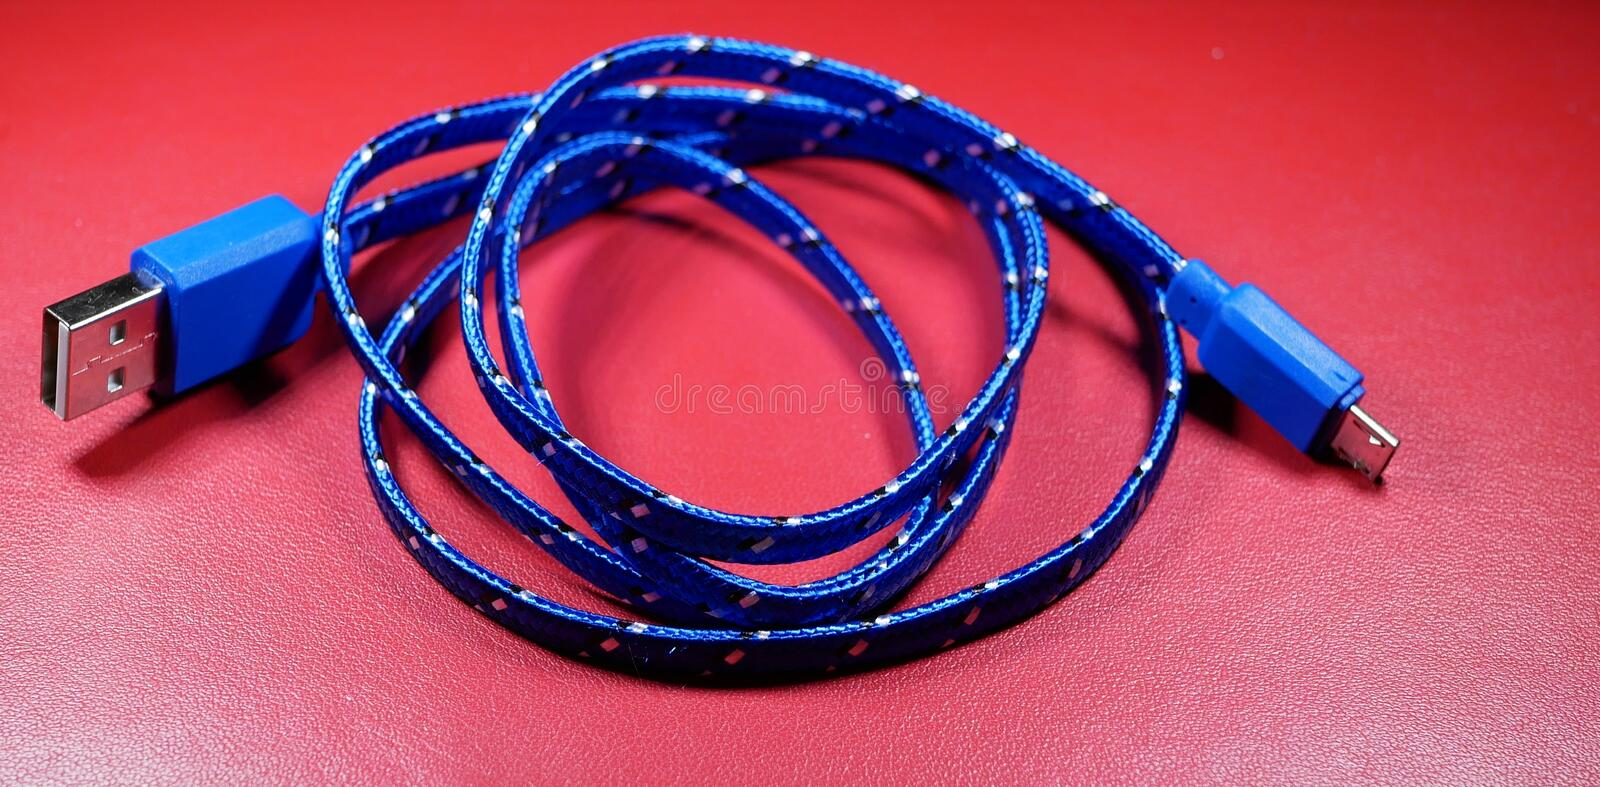 USB cable in blue braid with white dots on red background. stock image